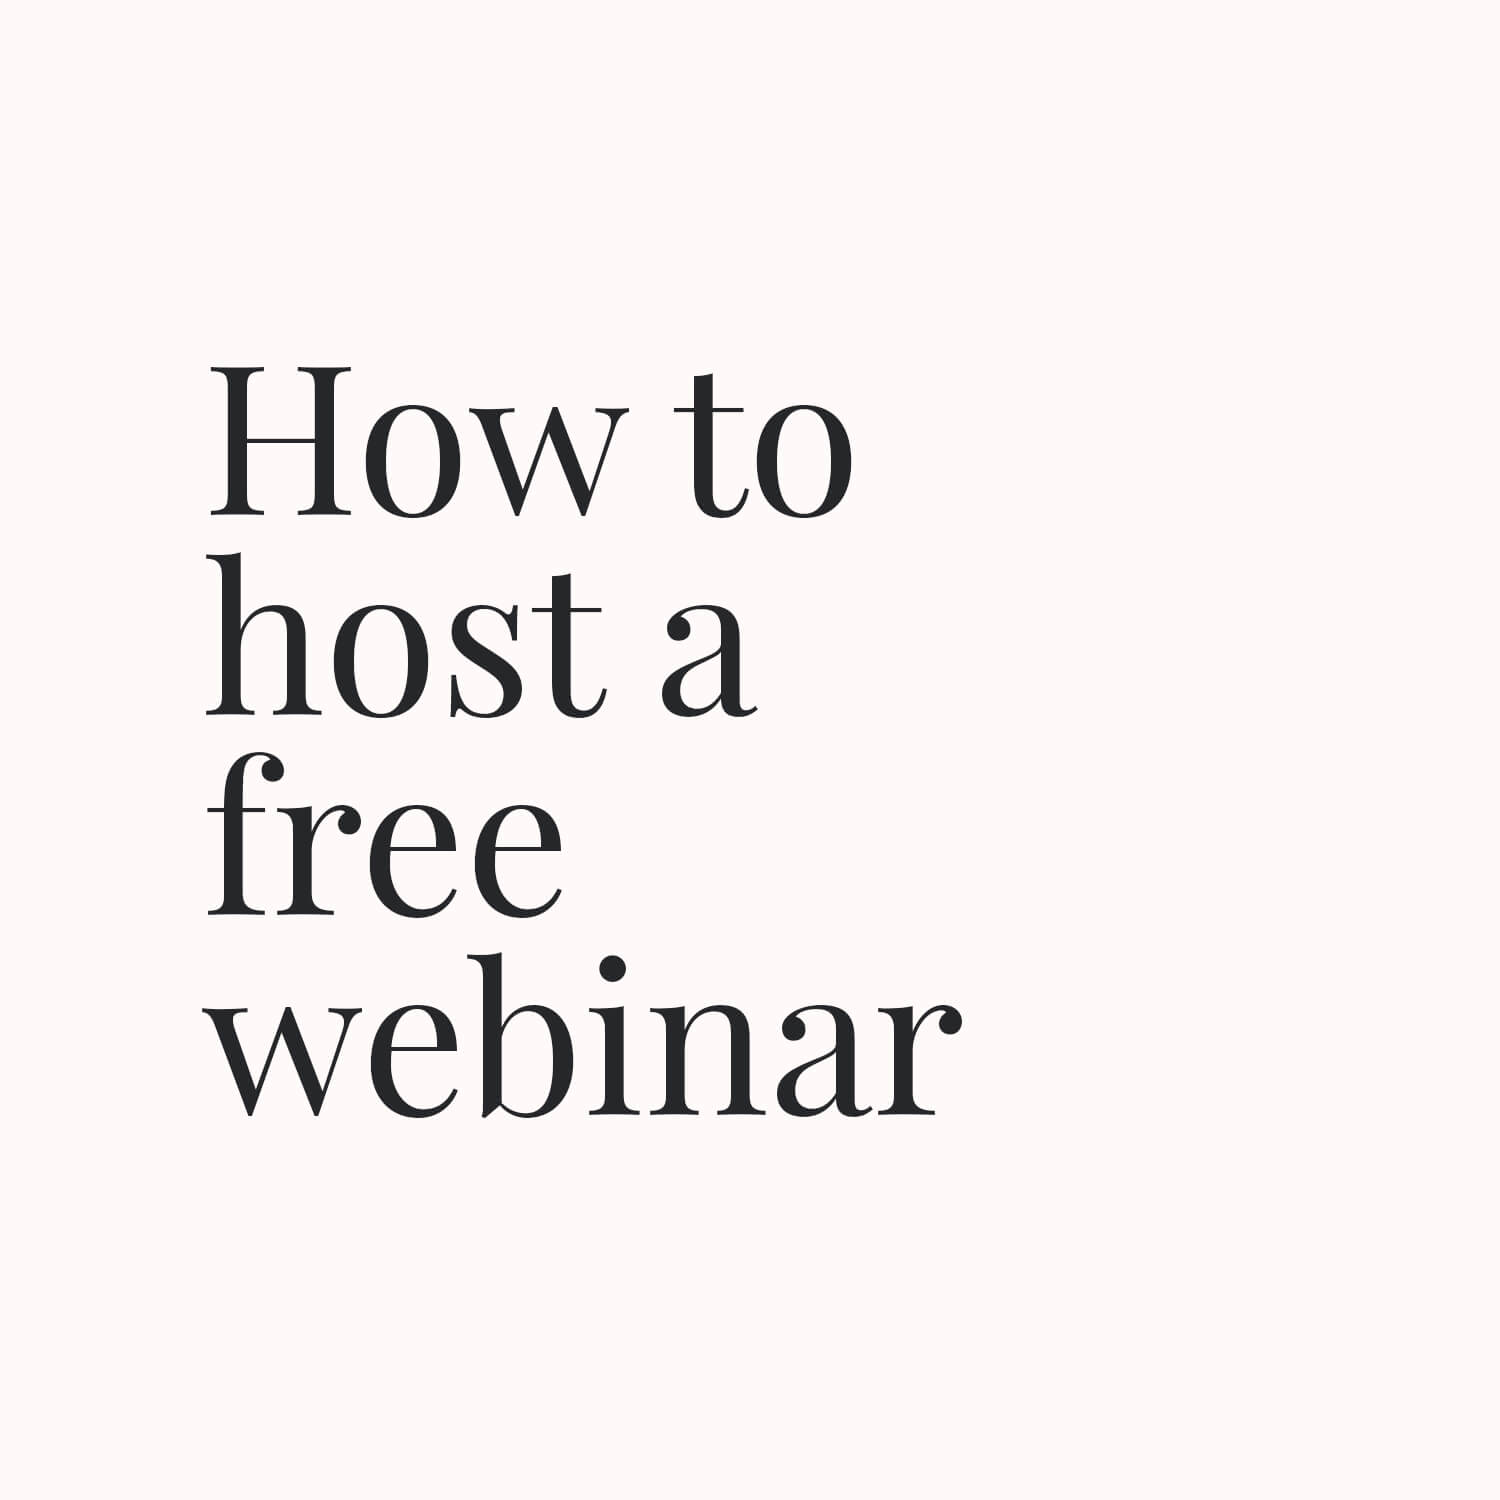 How to host a free webinar small.jpg